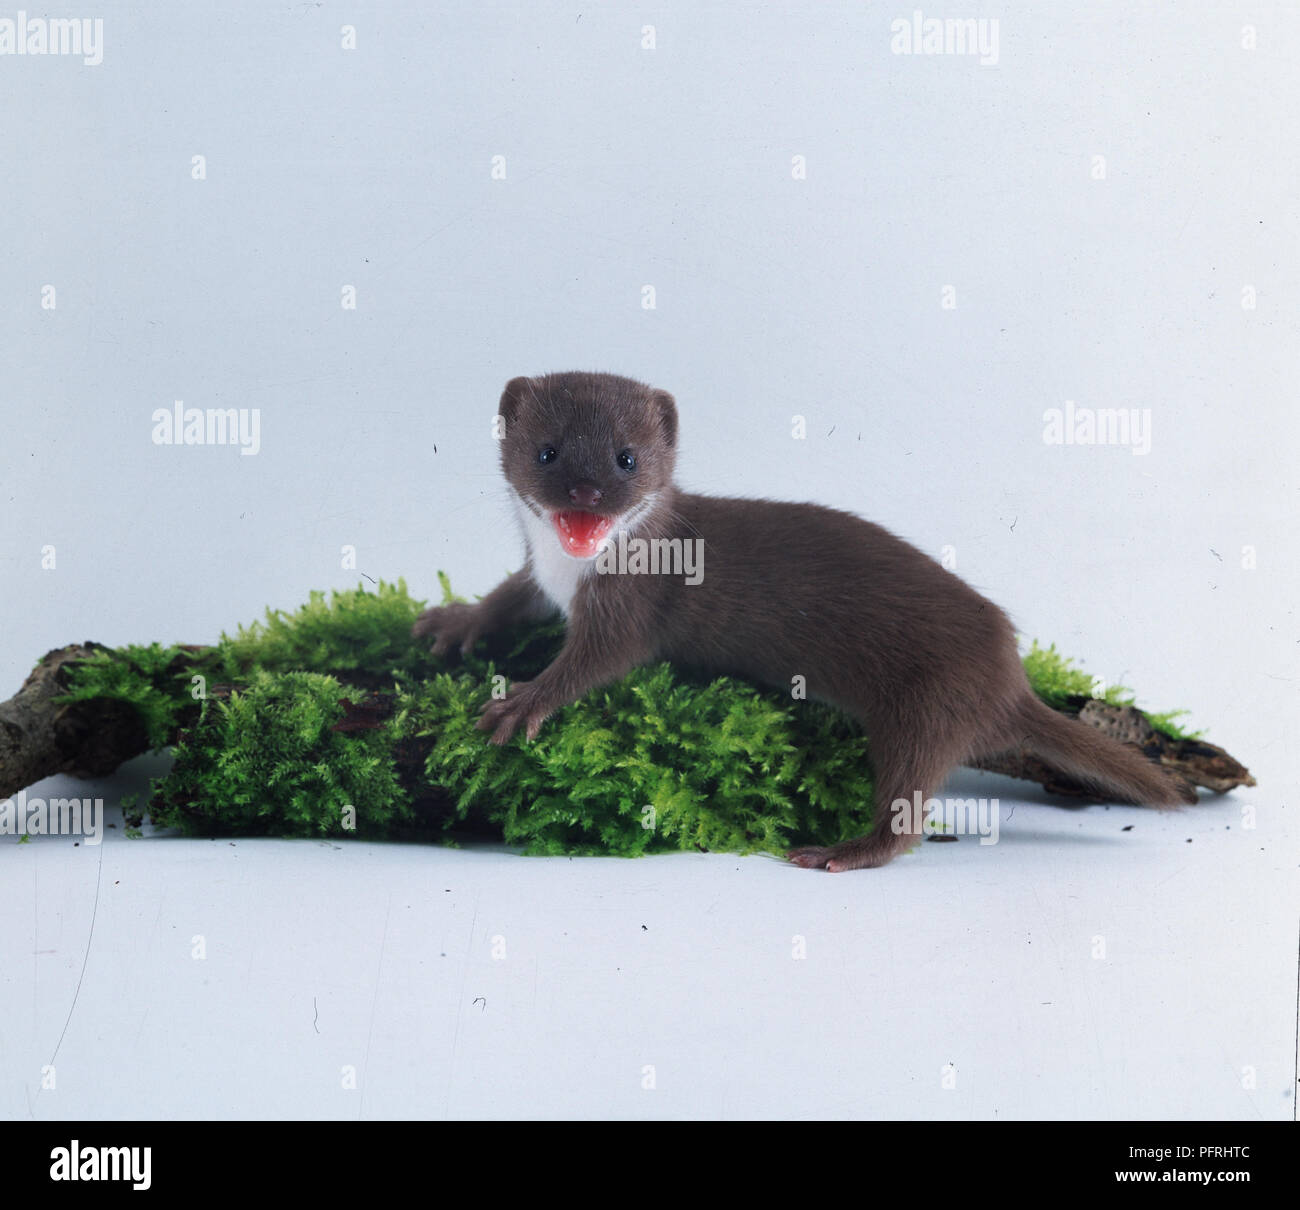 Mustela nivalis (weasel, least weasel). Family Mustelidae. Baby weasel on moss-covered ground baring its teeth - Stock Image